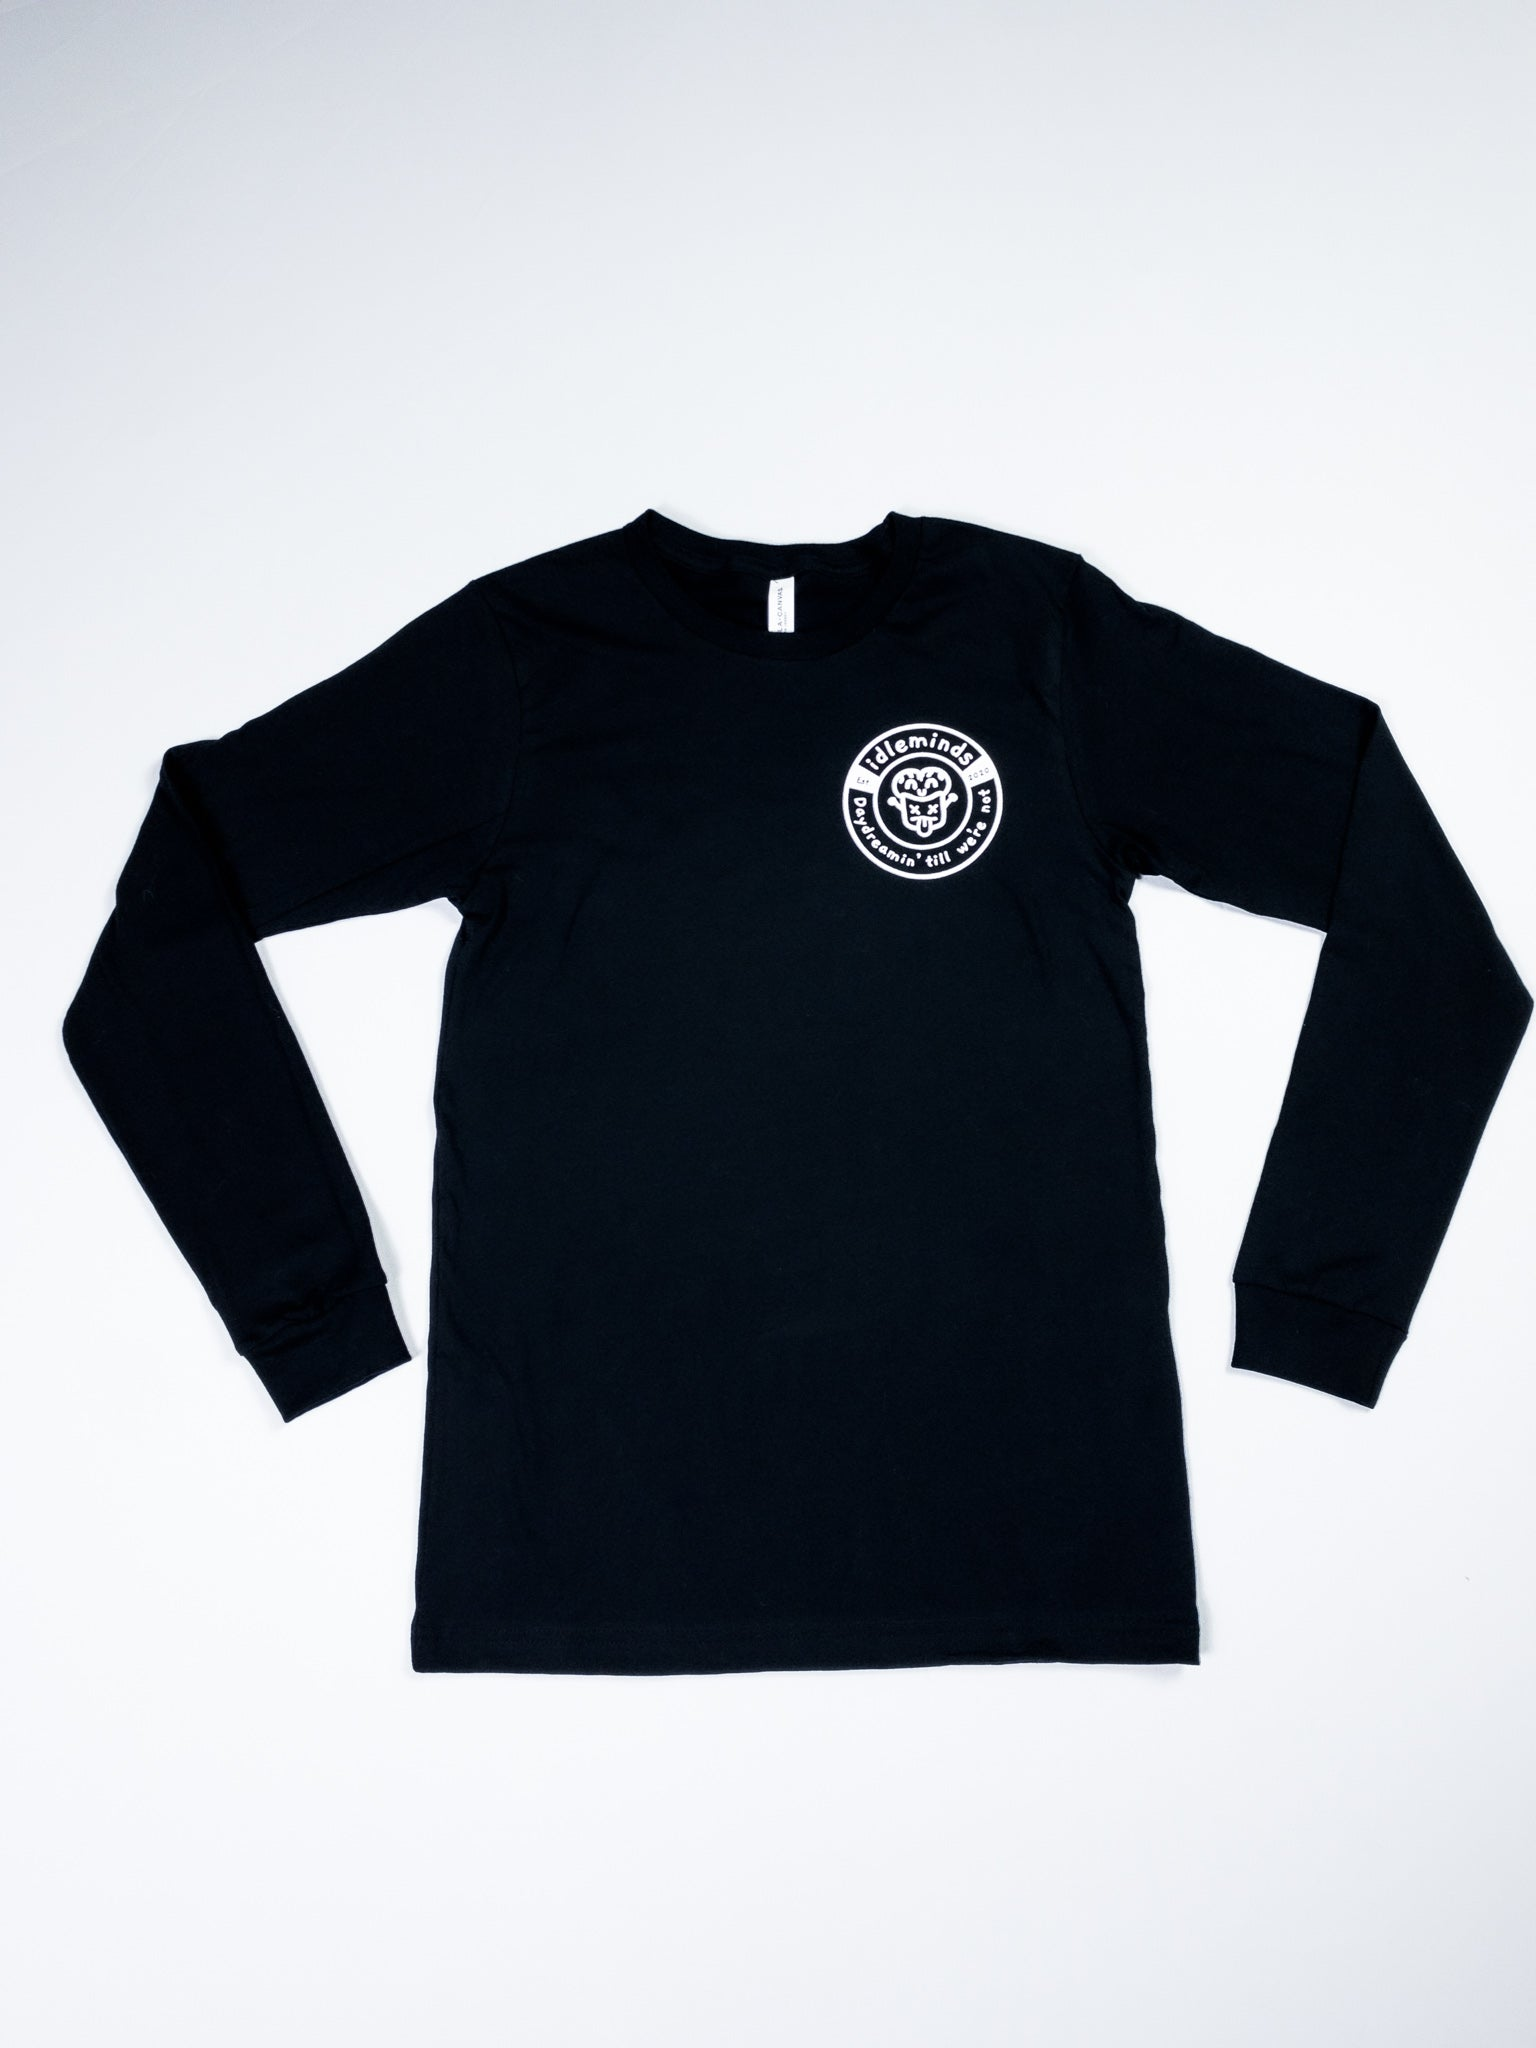 Daydreamin' Long Sleeve Tee